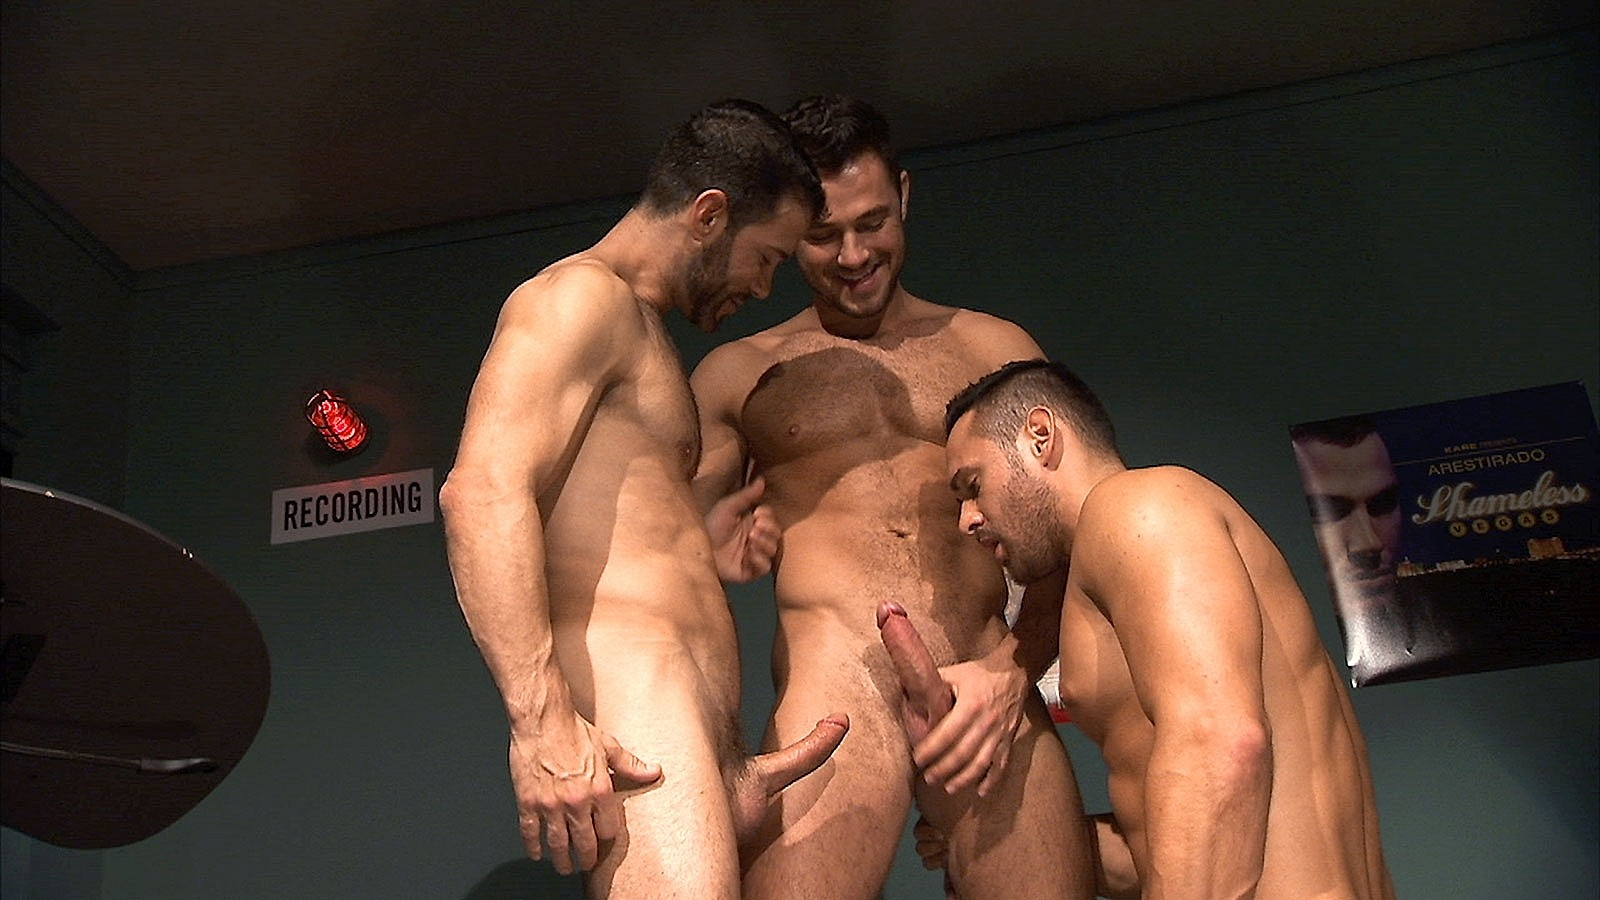 gaymassage gran polla gay